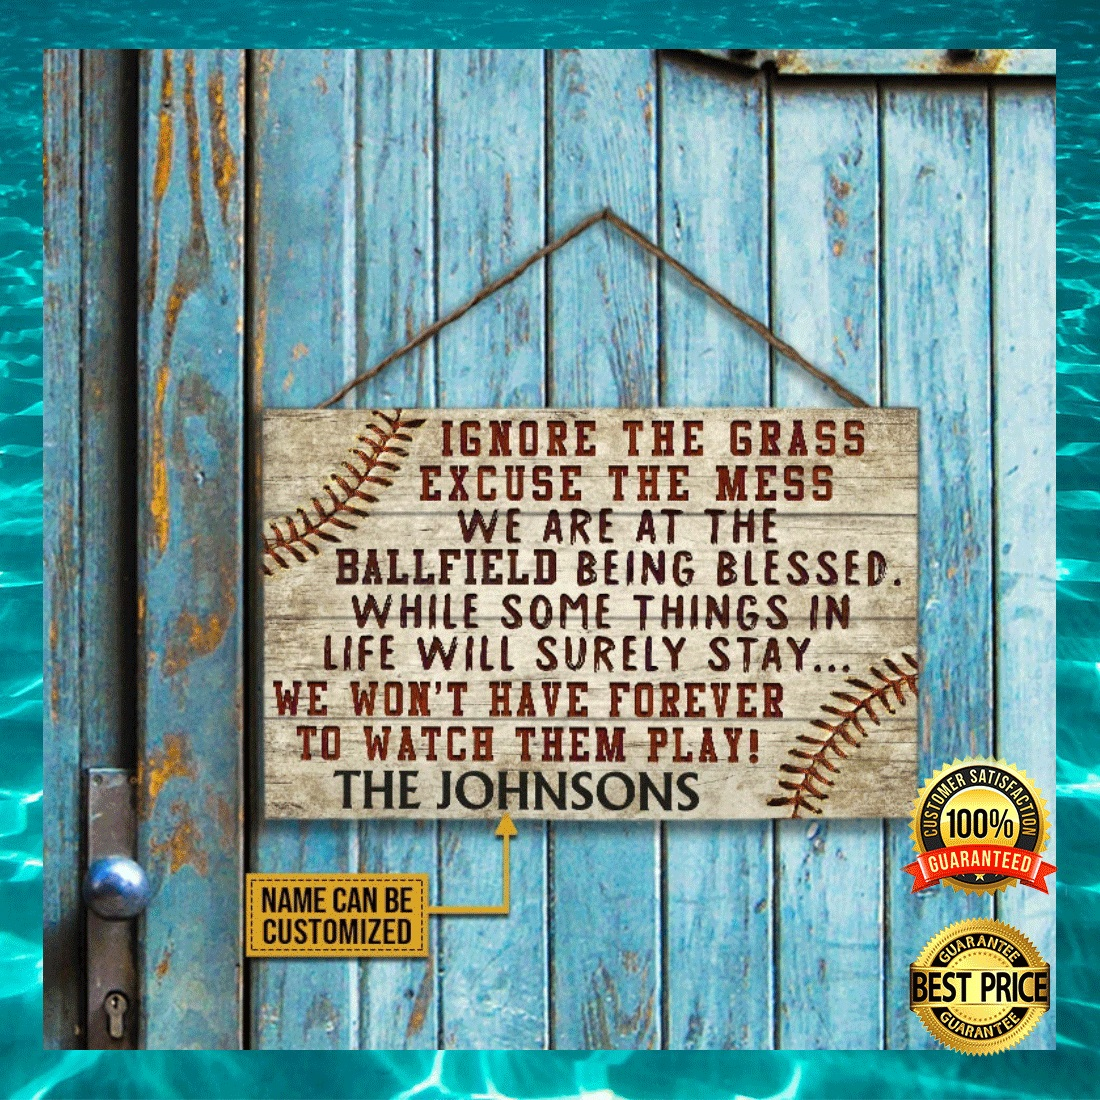 PERSONALIZED IGNORE THE GRASS EXCUSE THE MESS WE ARE AT THE BALLFIELD BEING BLESSED DOOR SIGN 6